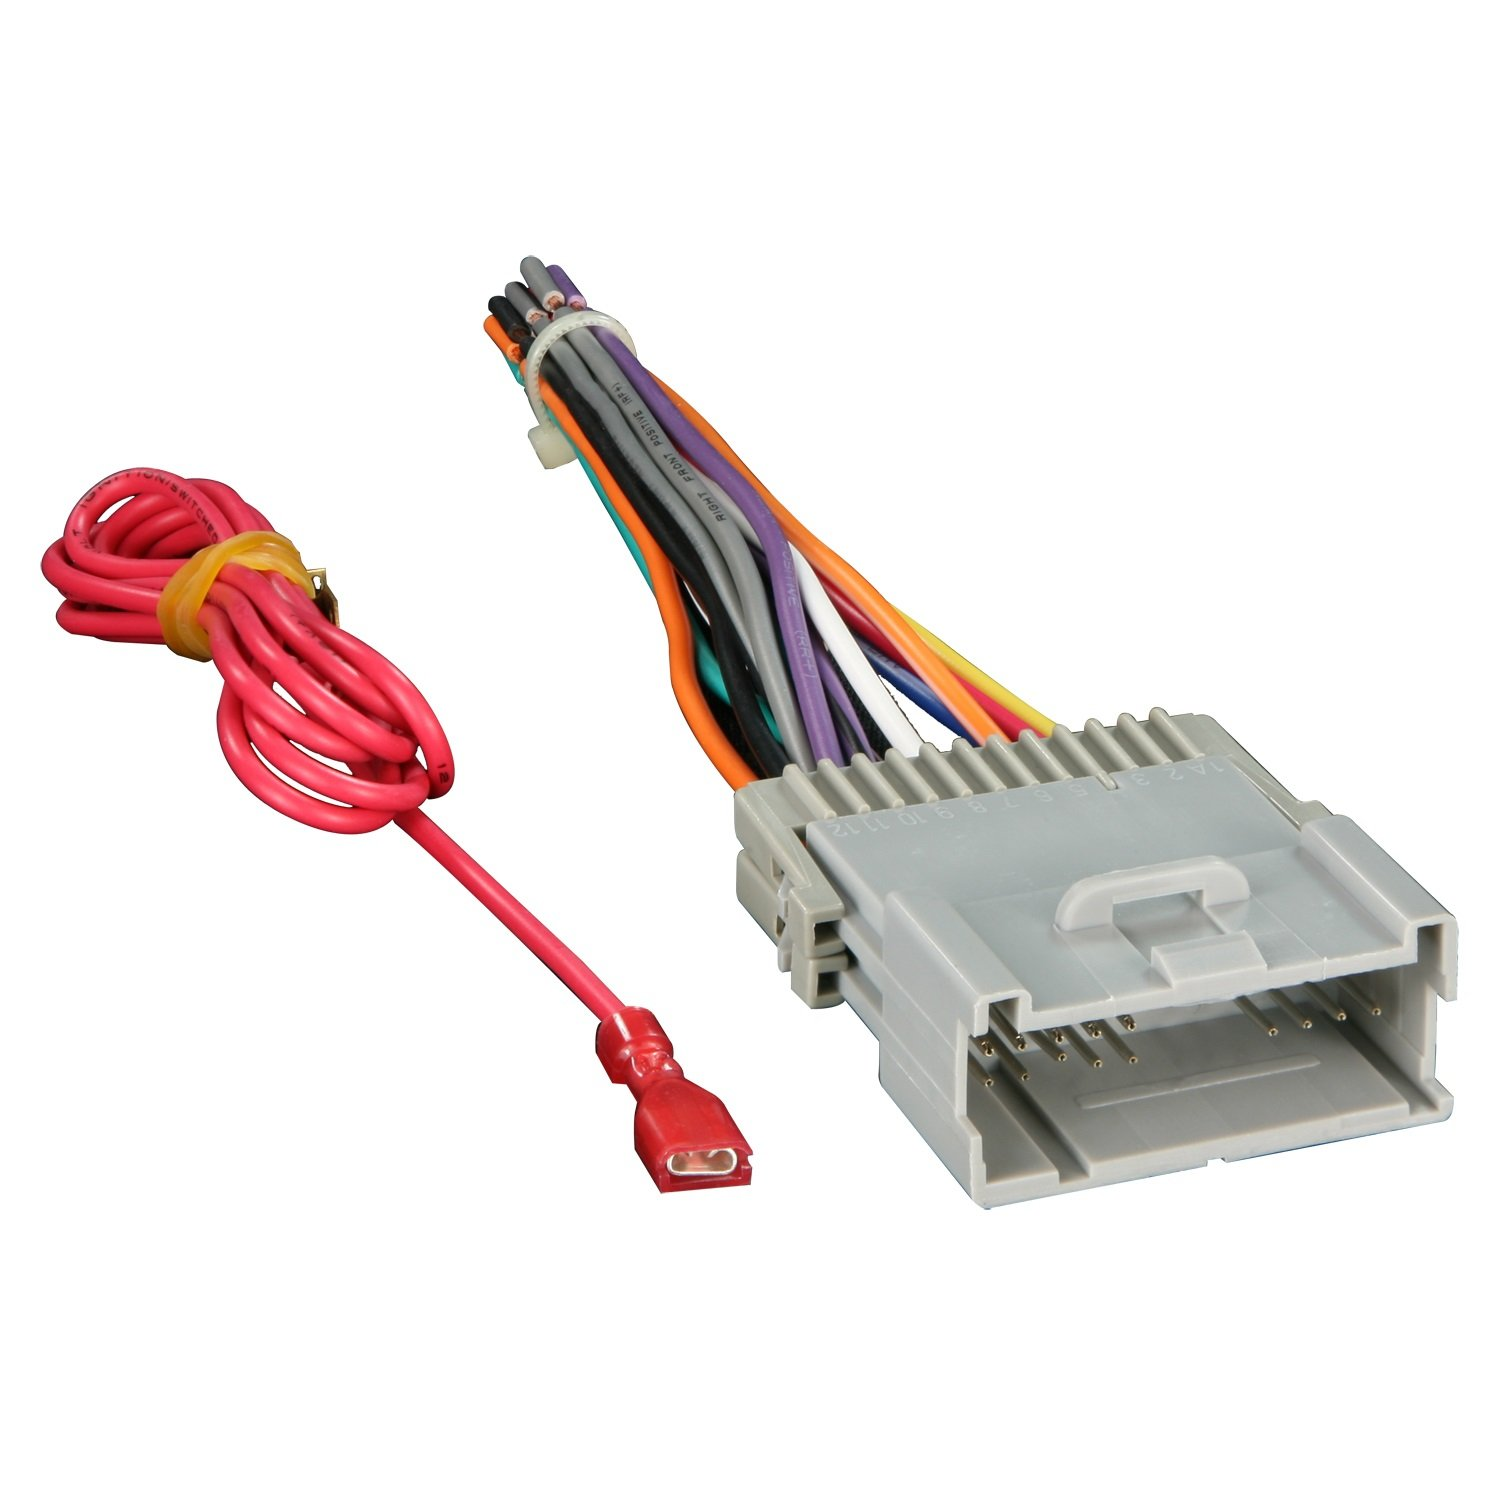 61eewxp9orL._SL1500_ amazon com metra 70 2003 radio wiring harness for gm 98 08 Chevy Nova Wiring Harness at virtualis.co